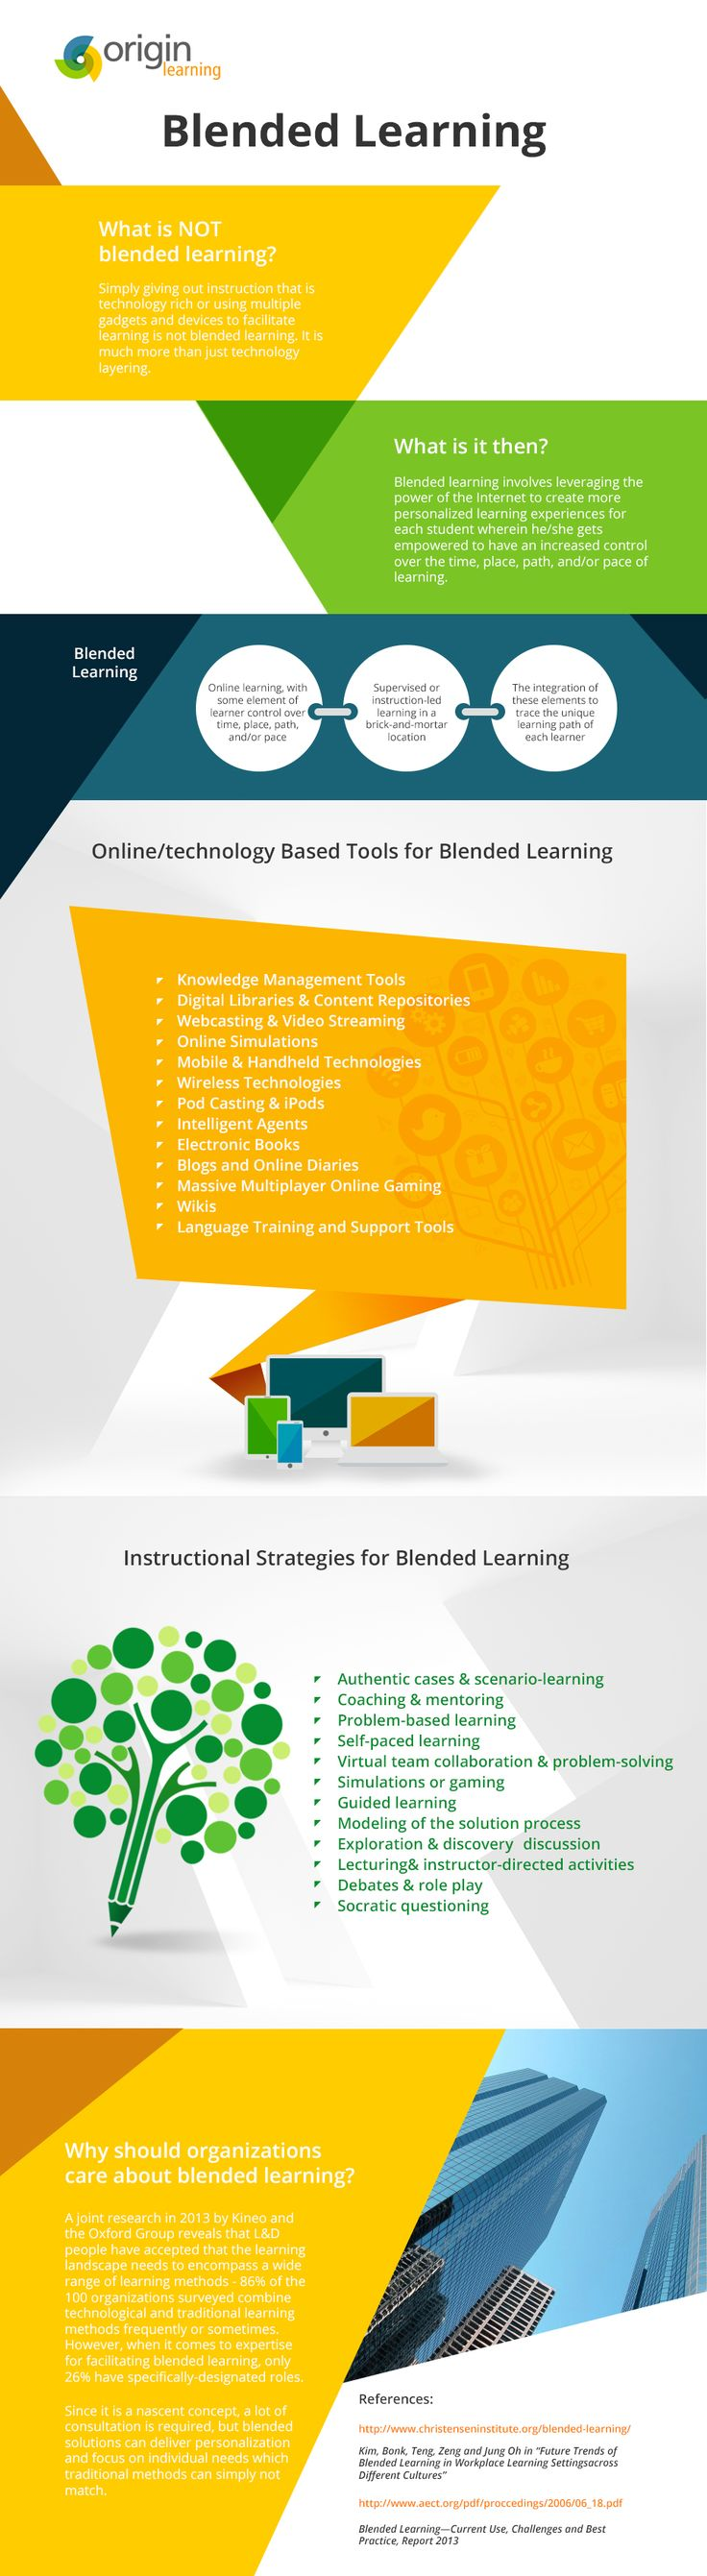 The Mystery of Blended Learning Infographic - http://elearninginfographics.com/mystery-blended-learning-infographic/